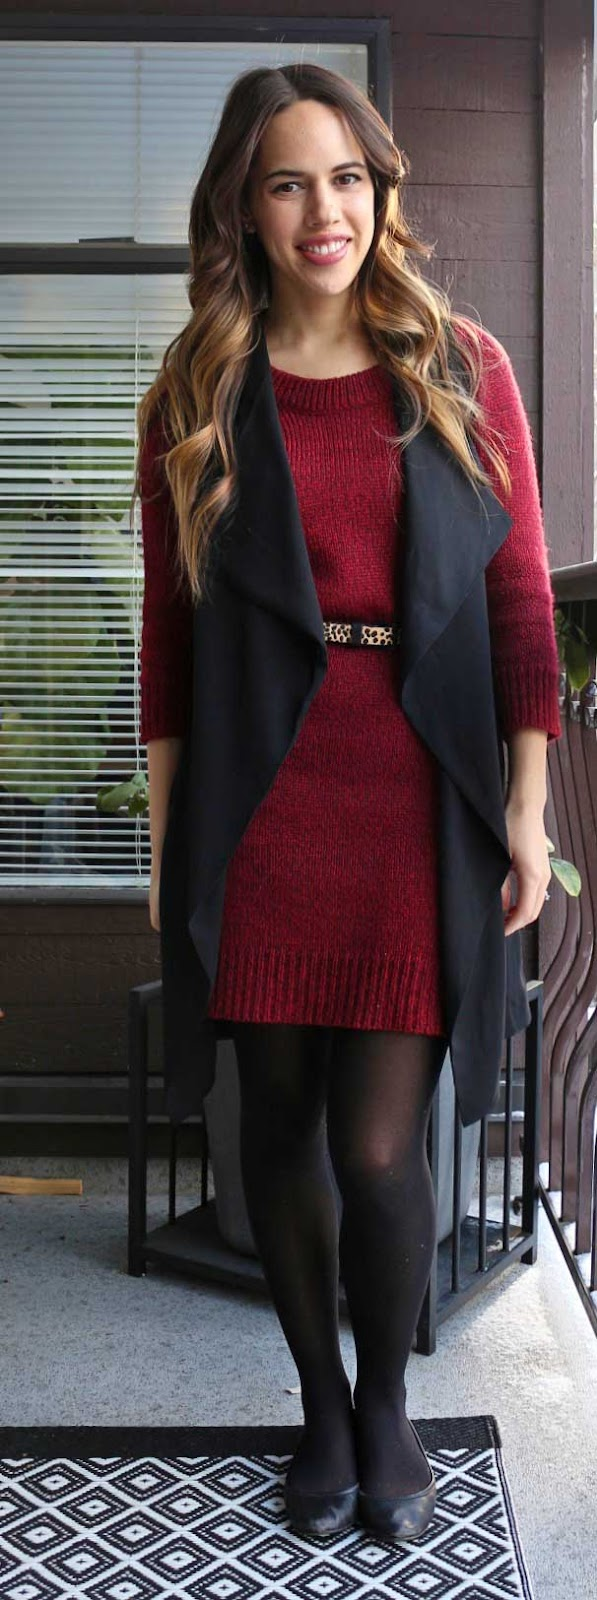 Jules in Flats - Joe Fresh Sweater Dress, Dynamite Waterfall Vest, Leopard Print Belt